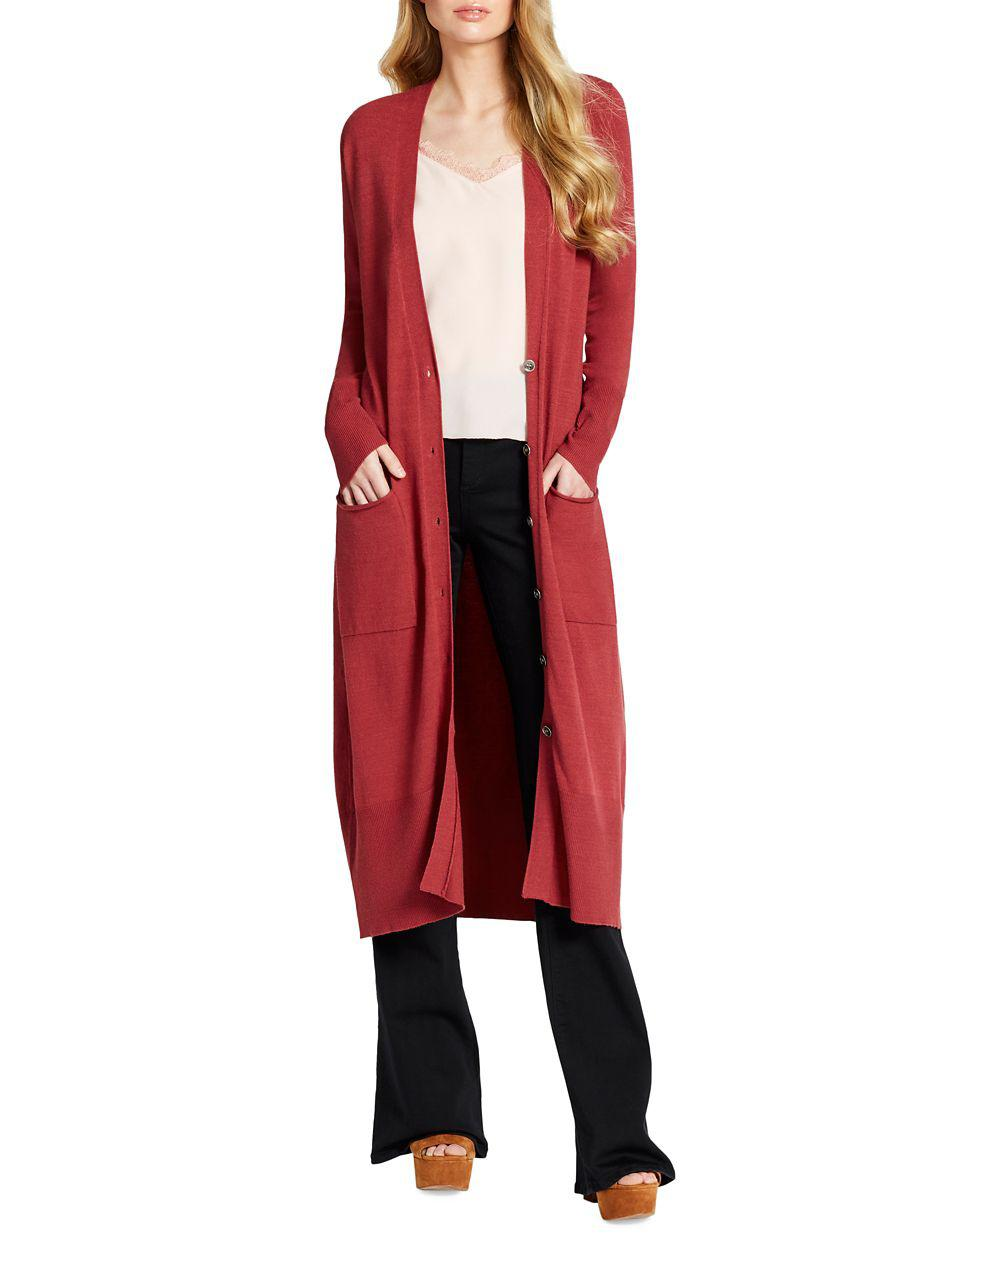 Jessica simpson Maxi Duster Cardigan in Red | Lyst